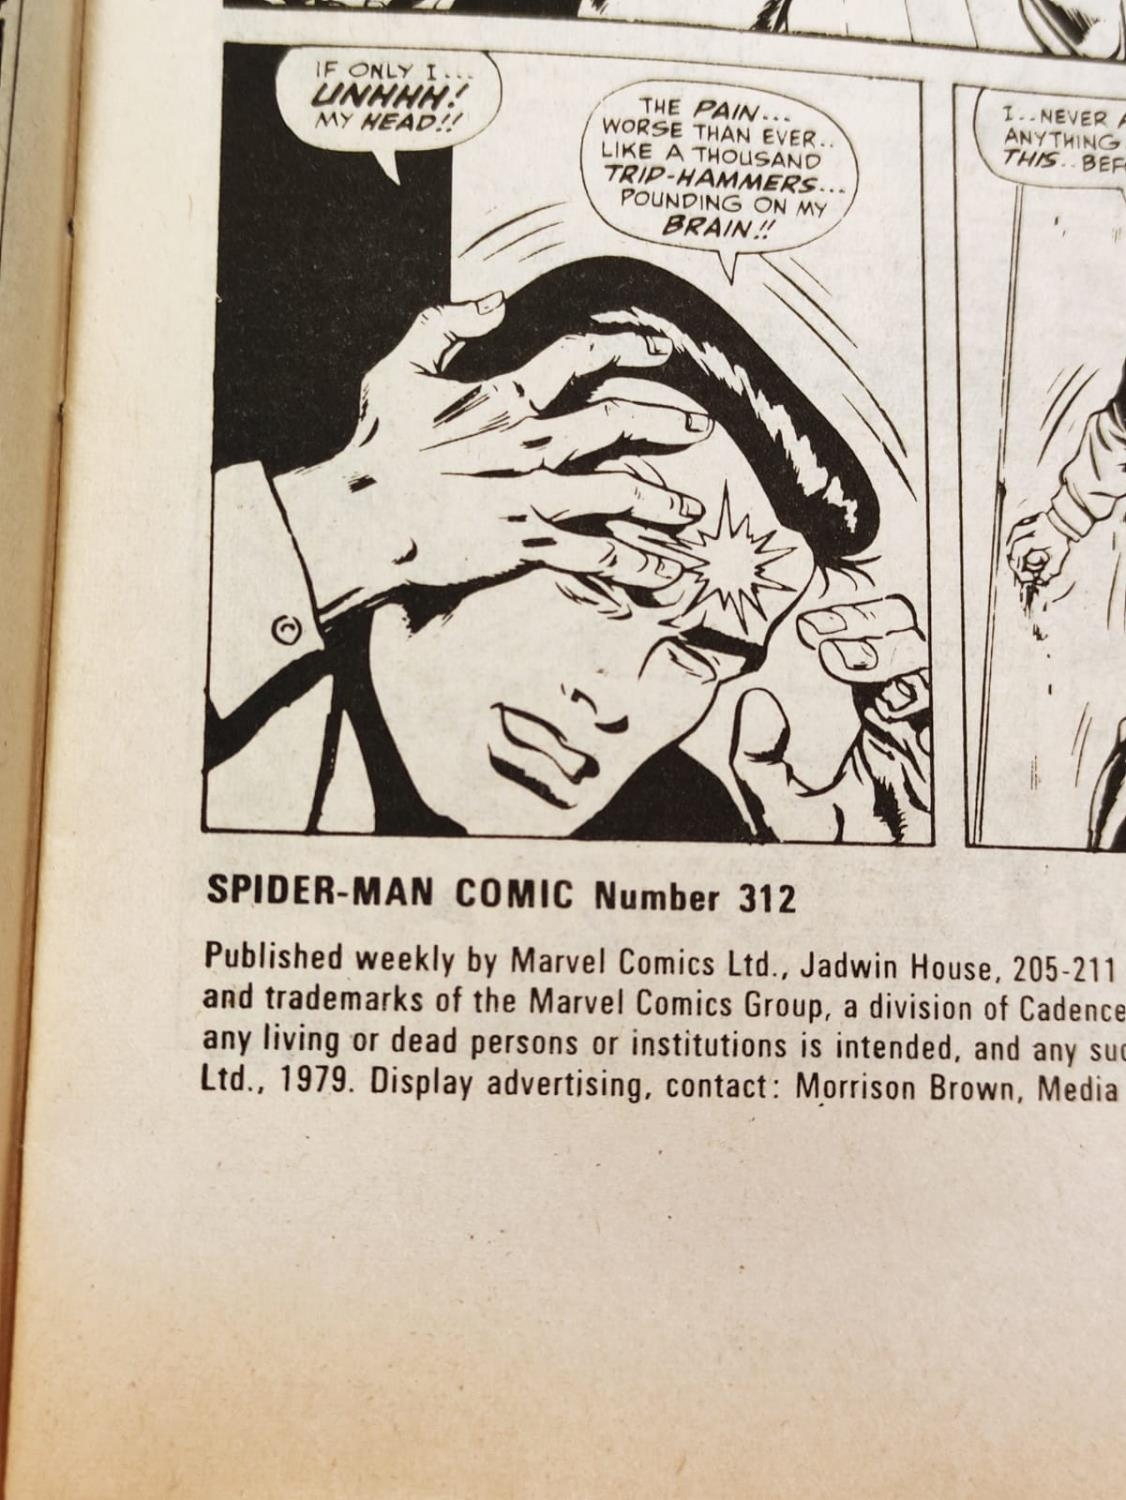 20 editions of mixed Vintage Marvel Comics. - Image 27 of 56